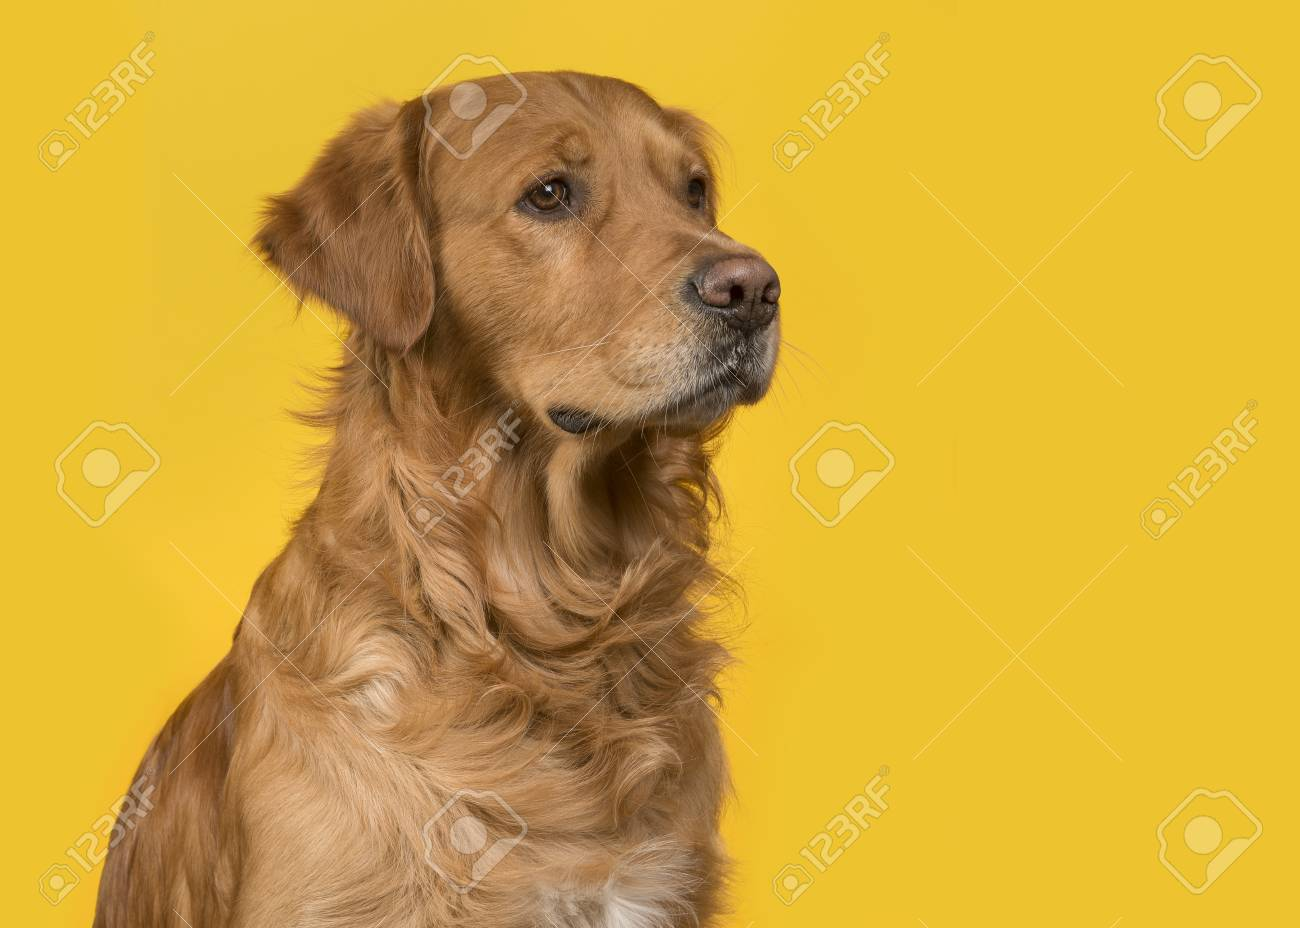 Portrait Of A Pretty Male Golden Retriever Dog Looking To The